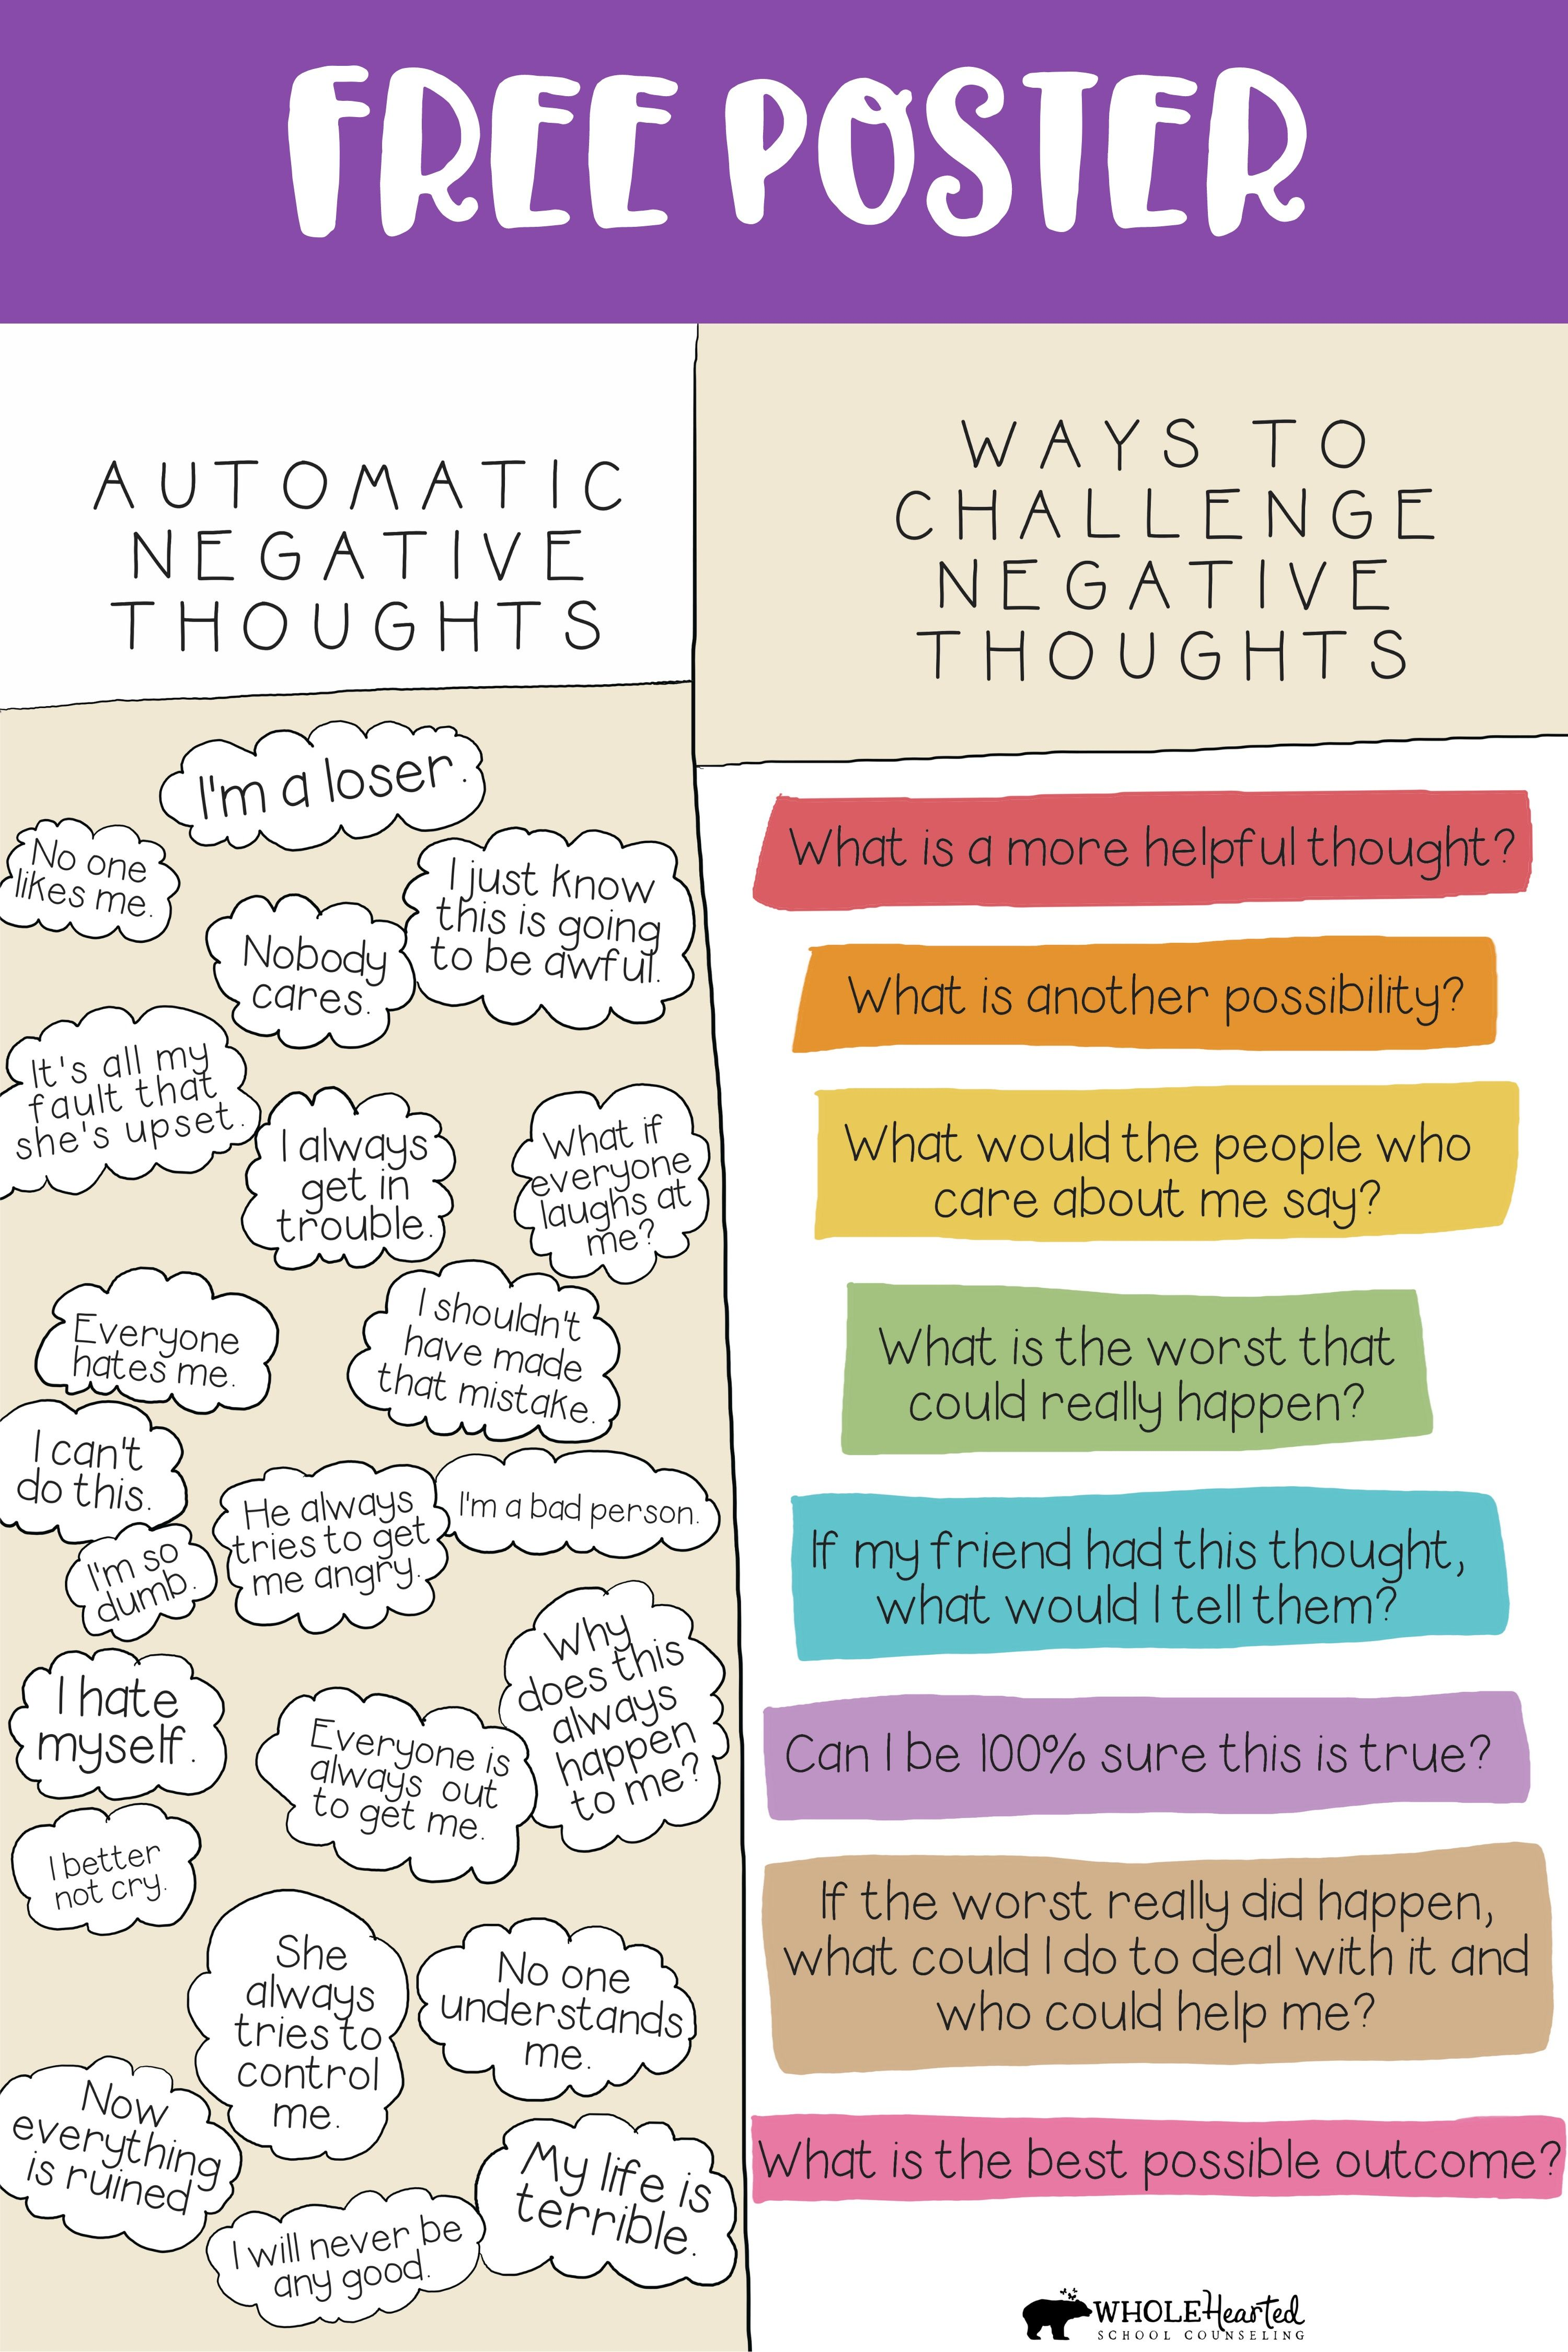 Challenge Automatic Negative Thoughts Cognitive Behavioral Therapy Free Poster In 2020 Cognitive Behavioral Therapy Negative Thoughts Behavioral Therapy